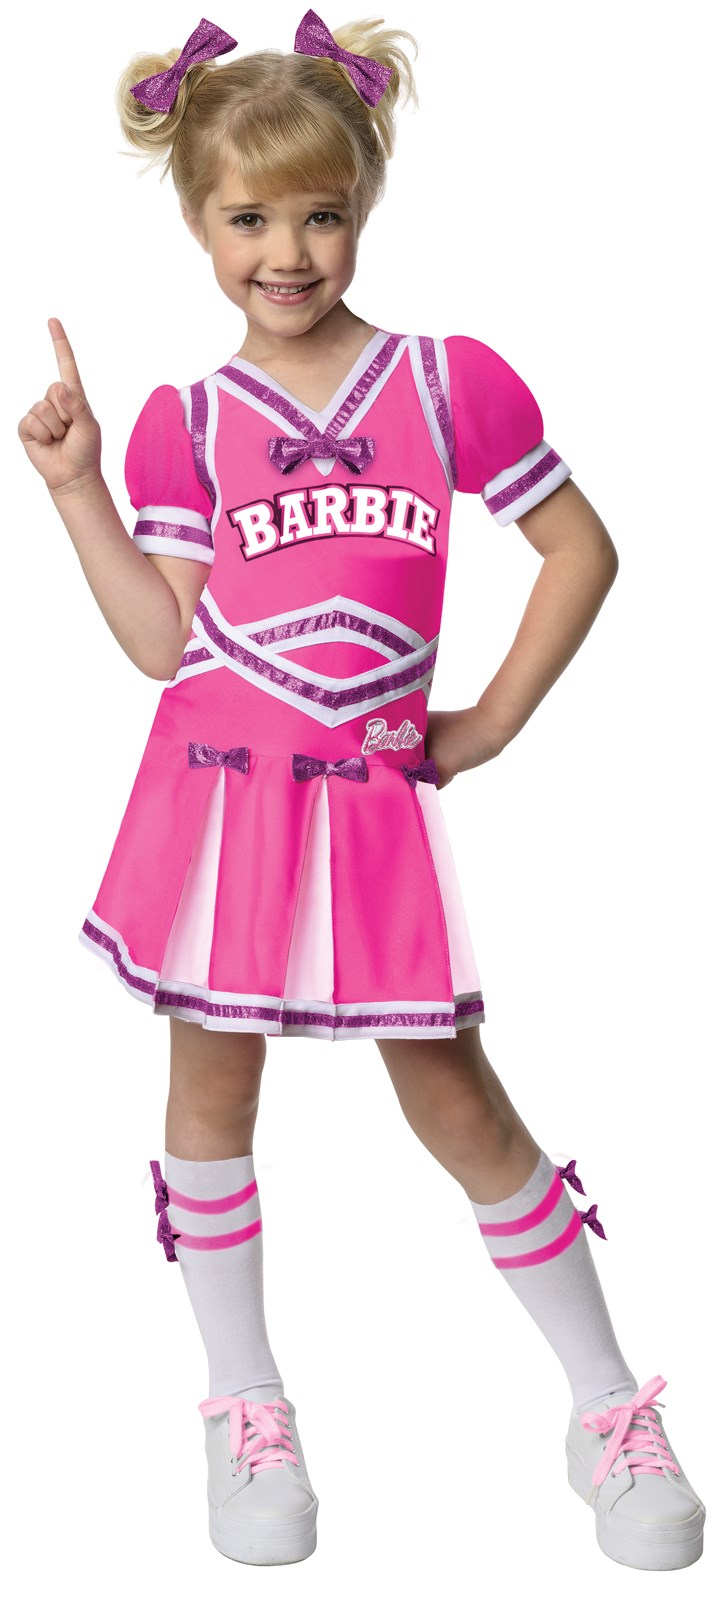 Image of Barbie Cheerleader Toddler / Child Costume Small (4-6)